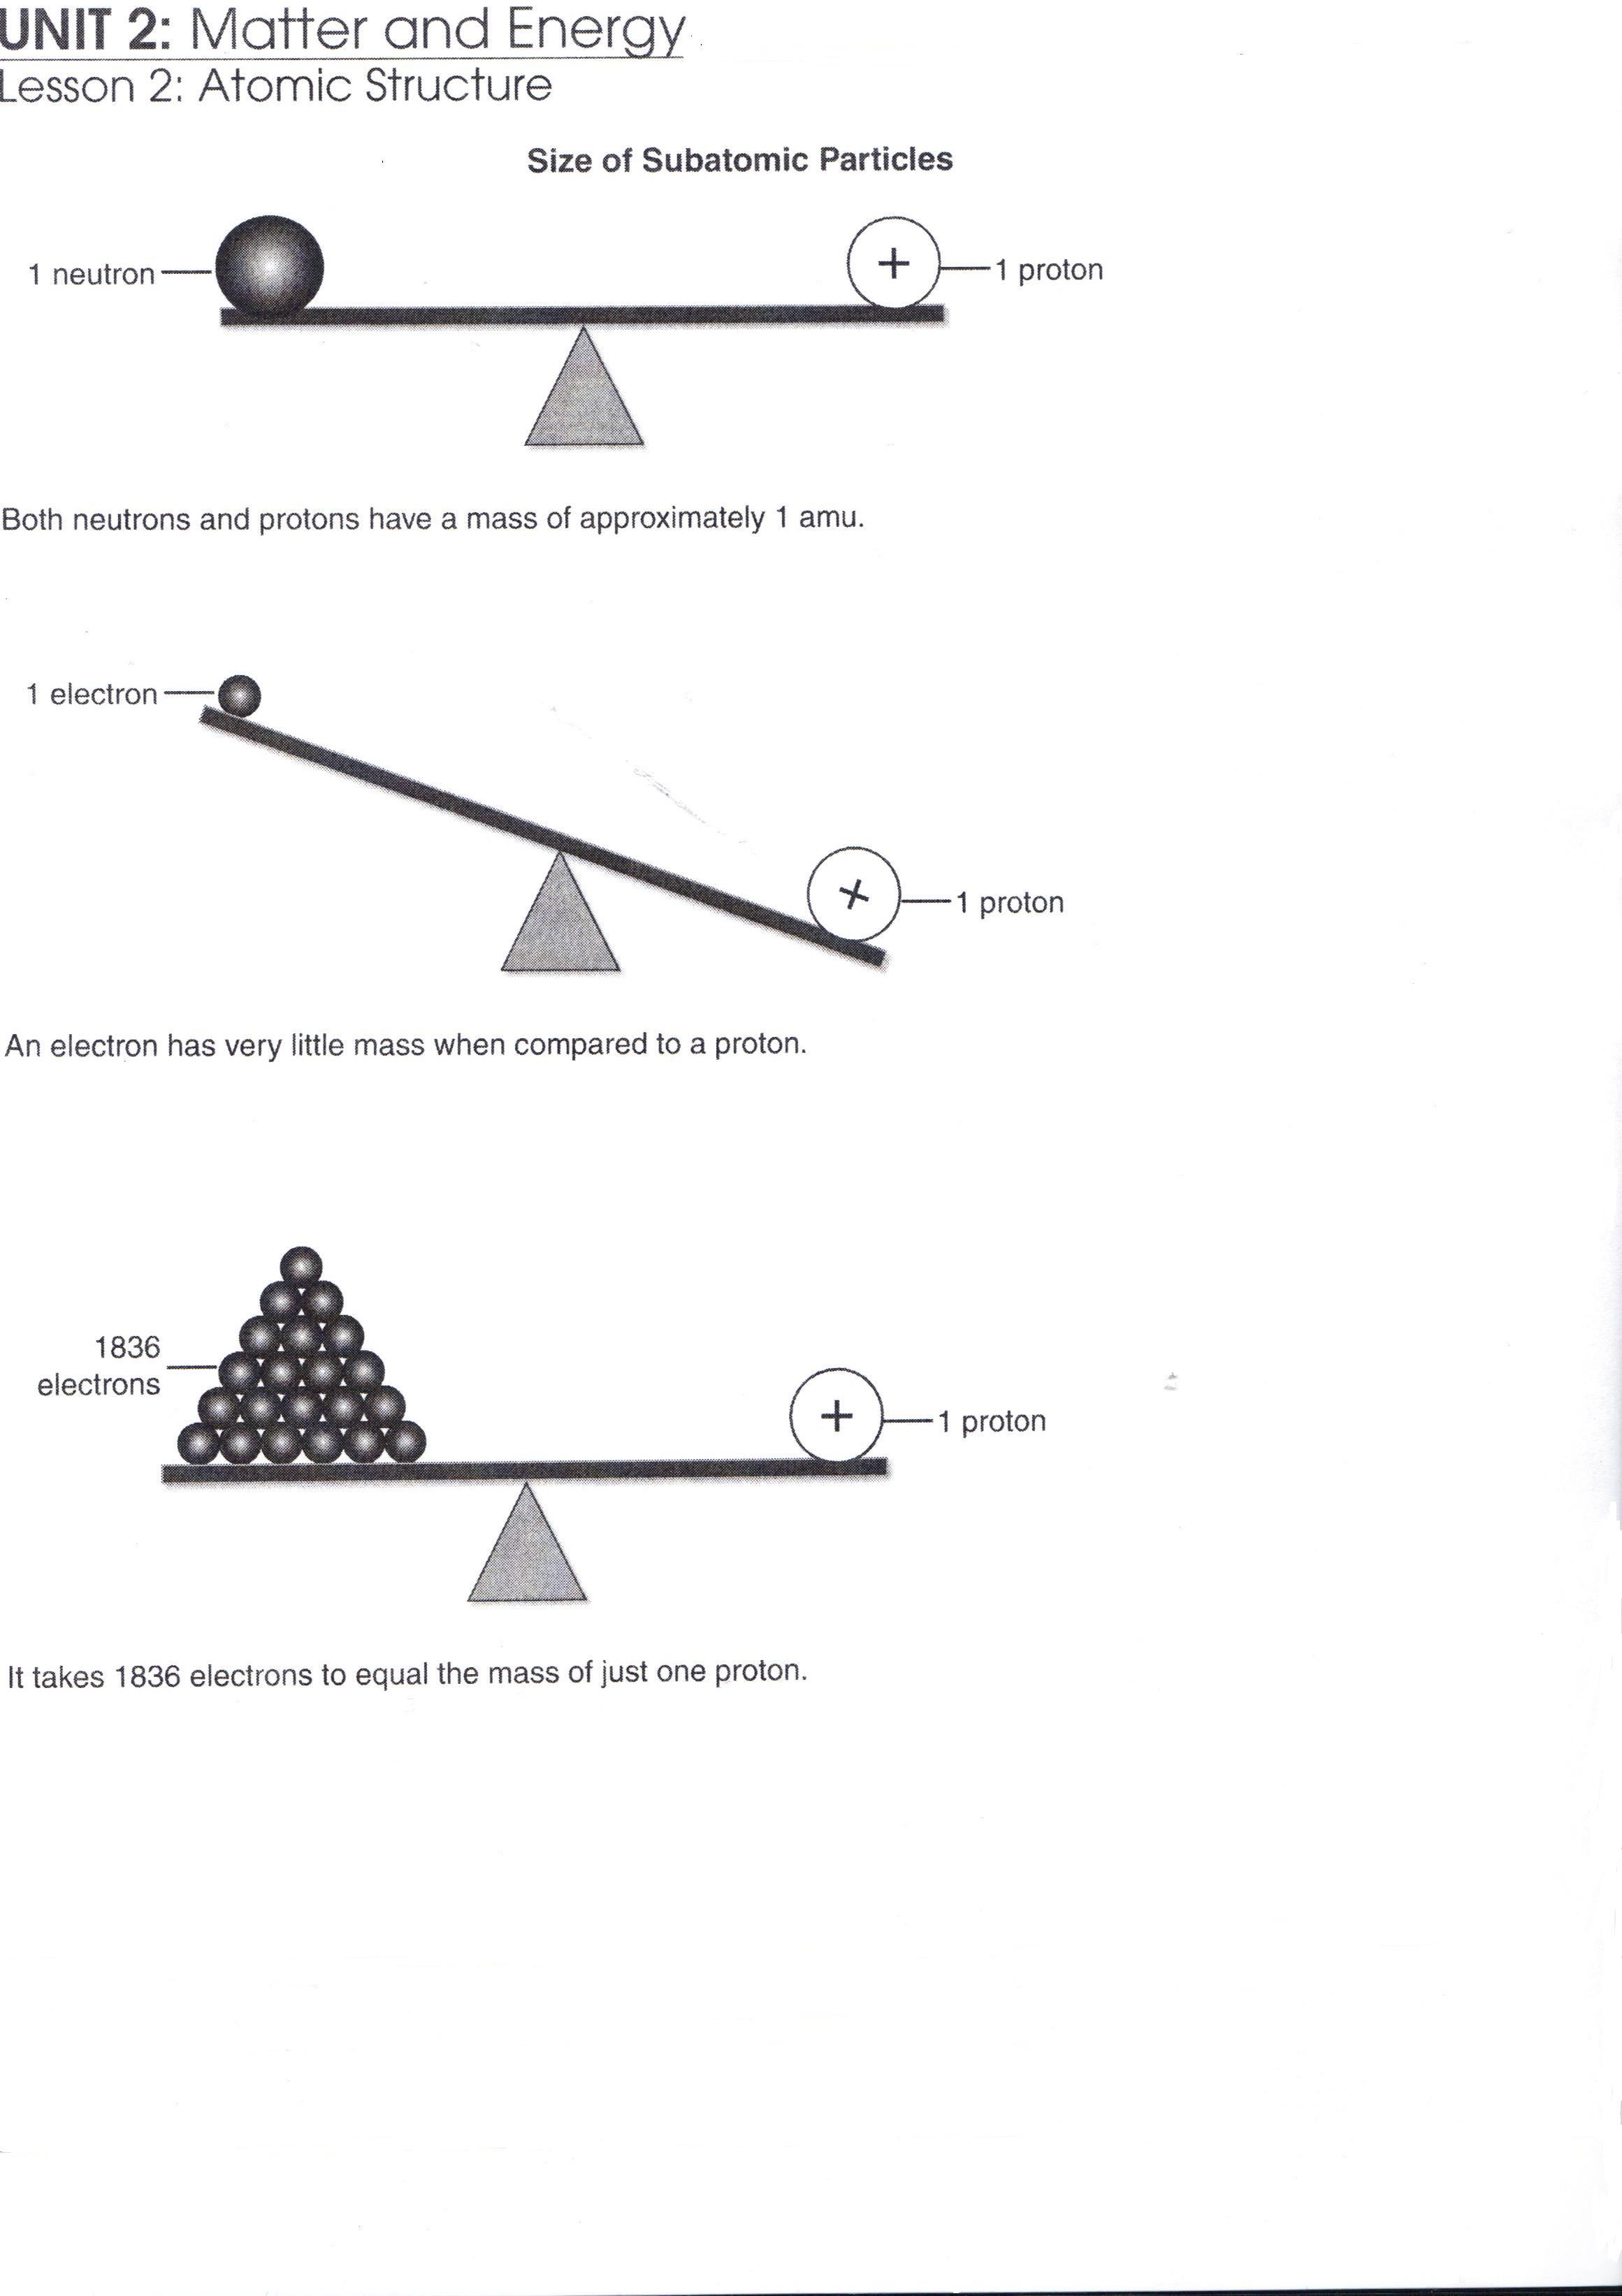 Caceres lisa 8th grade science on level lesson plans second relative masses of subatomic paraticles gamestrikefo Images